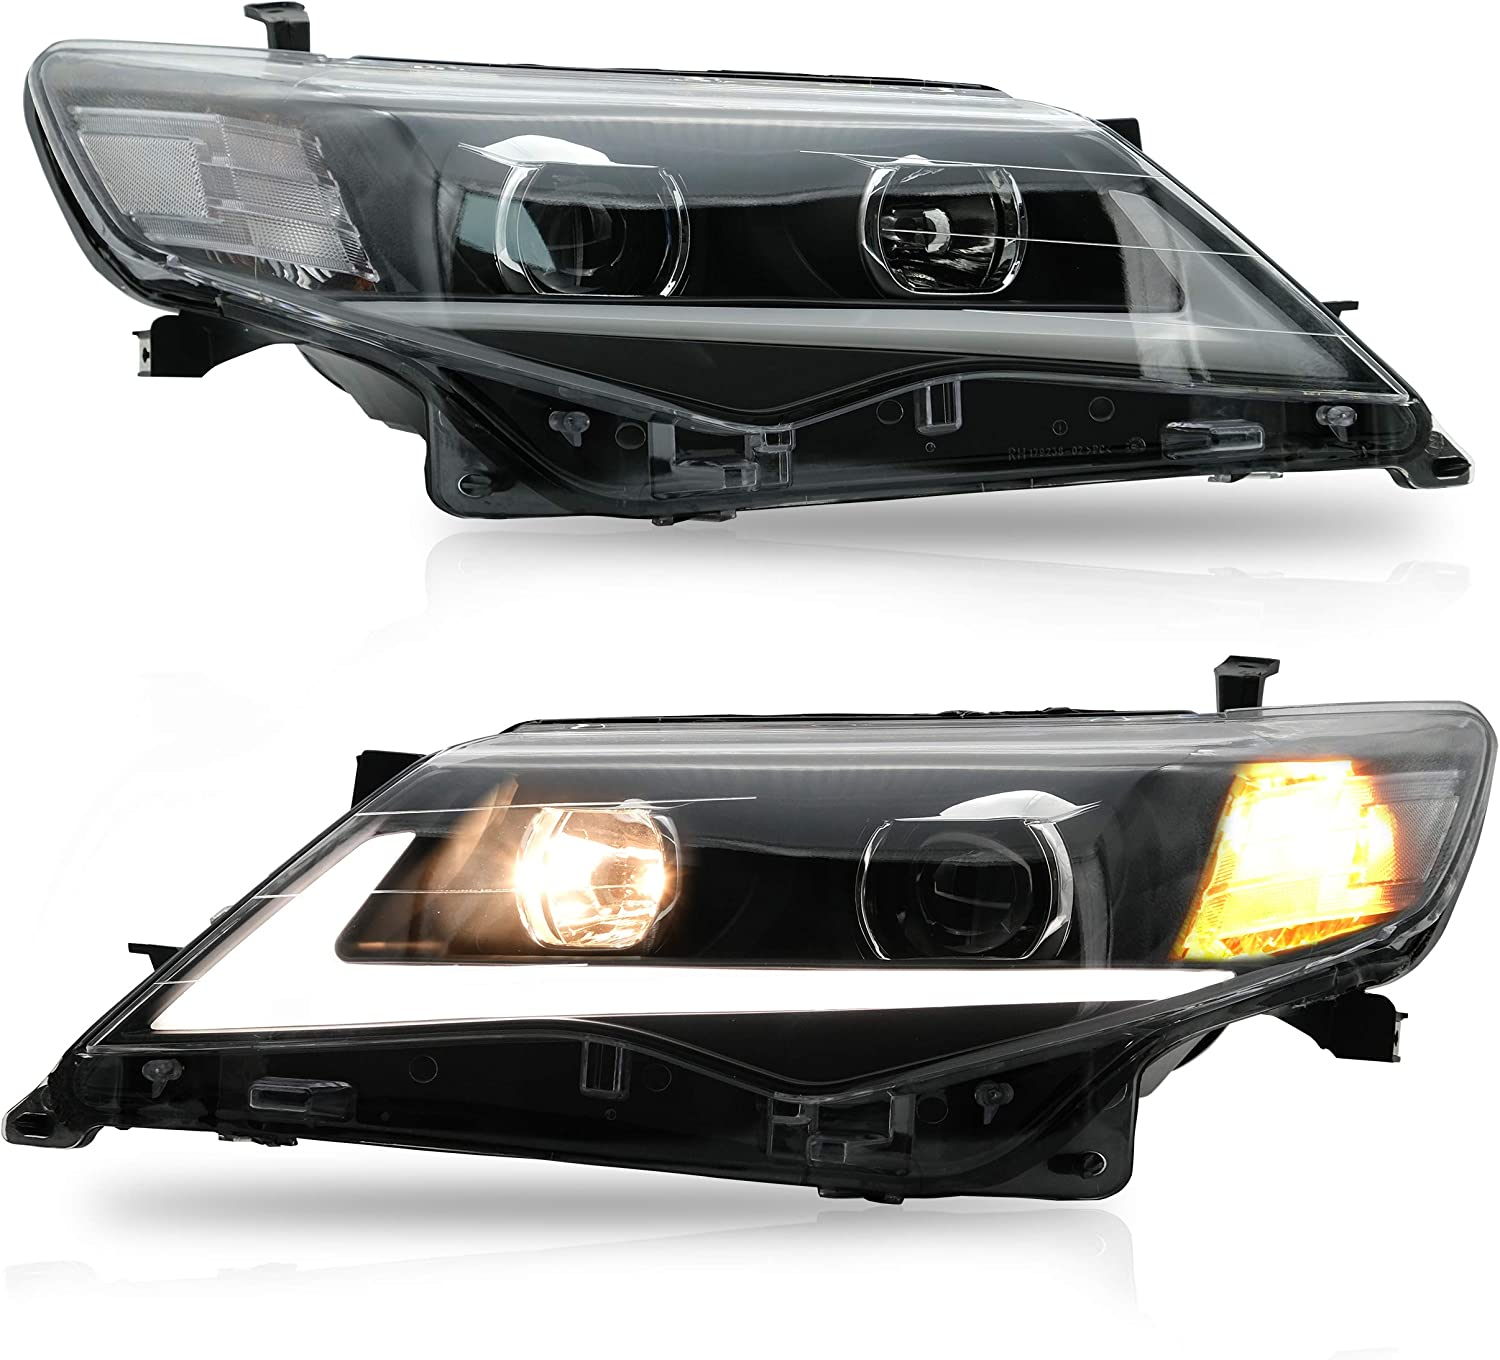 VLAND Headlight Assembly Fit for Toyota 2014 Camry 2013 We OFFer at cheap prices 2012 Bombing new work LE